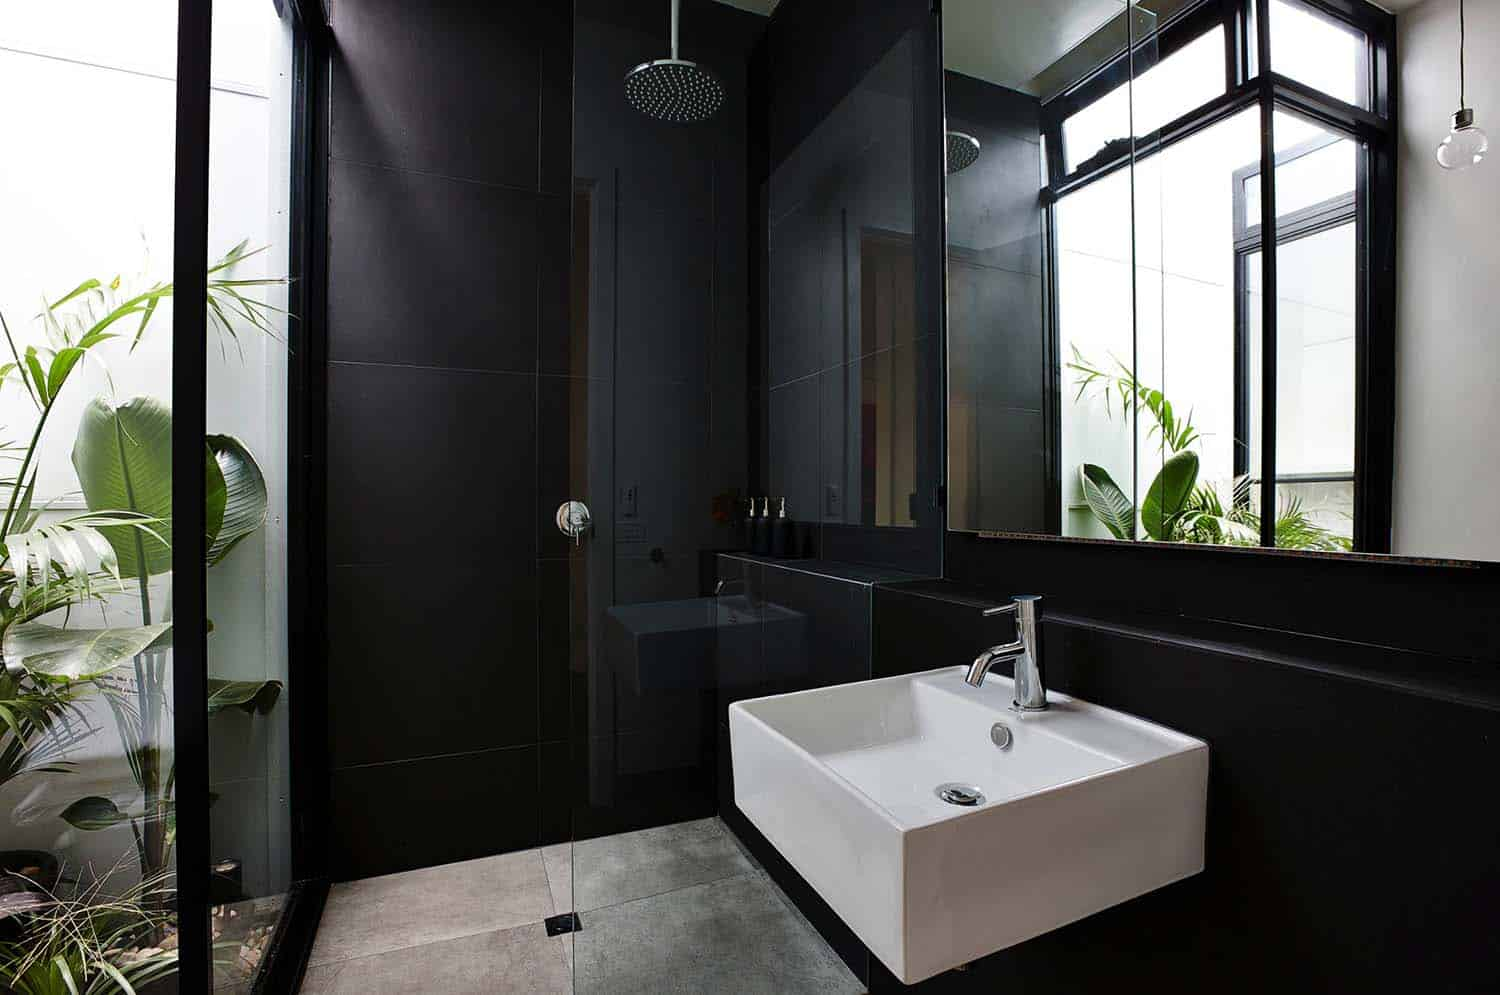 Inspiring Bathrooms Integrating Lush Gardens-09-1 Kindesign